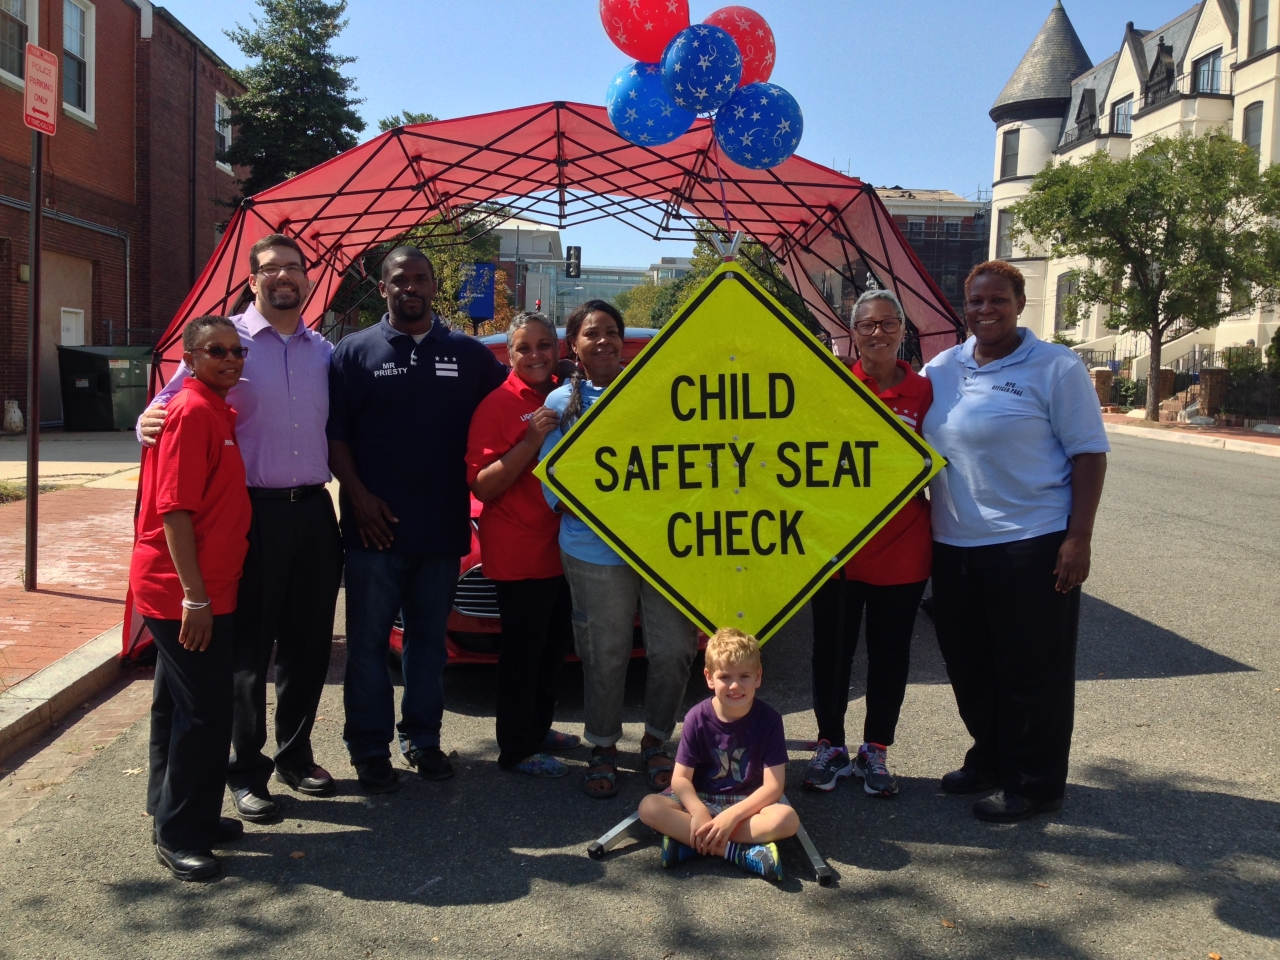 Photo of Child Safety Seat Check crew